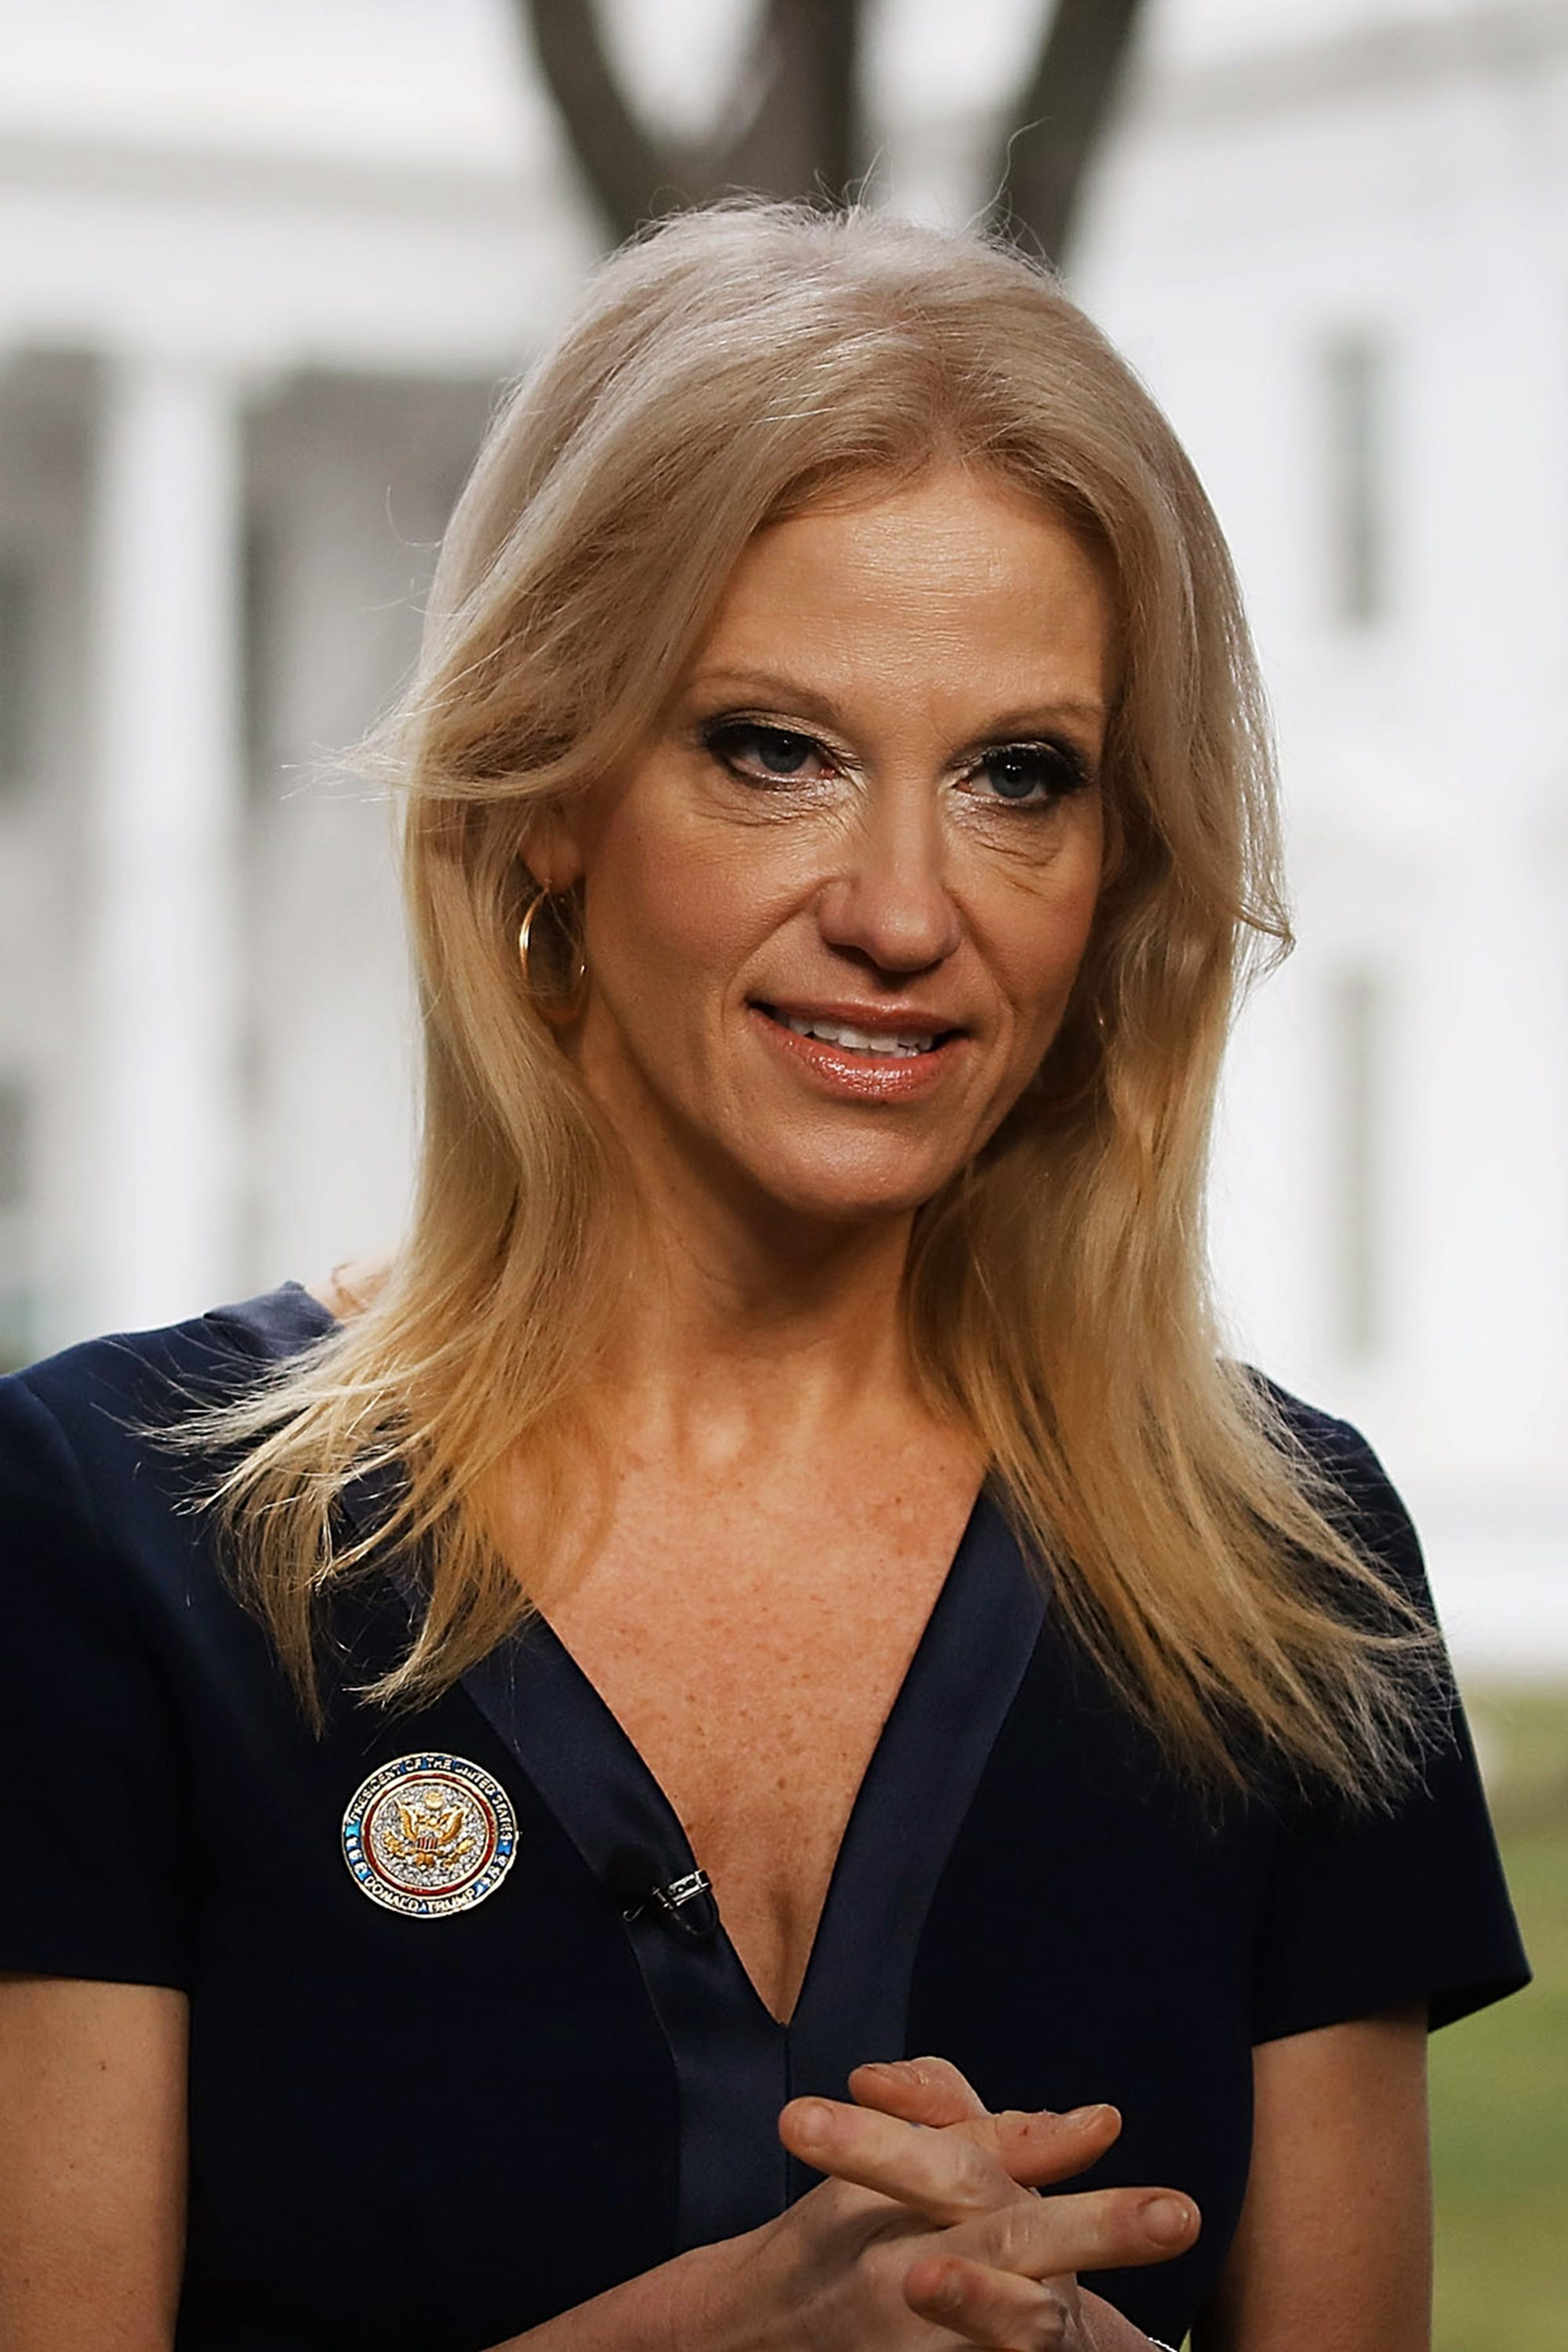 kellyanne conway consequences buy ivankas stuff comment kellyanne conway isn t punished for saying go buy ivanka s stuff